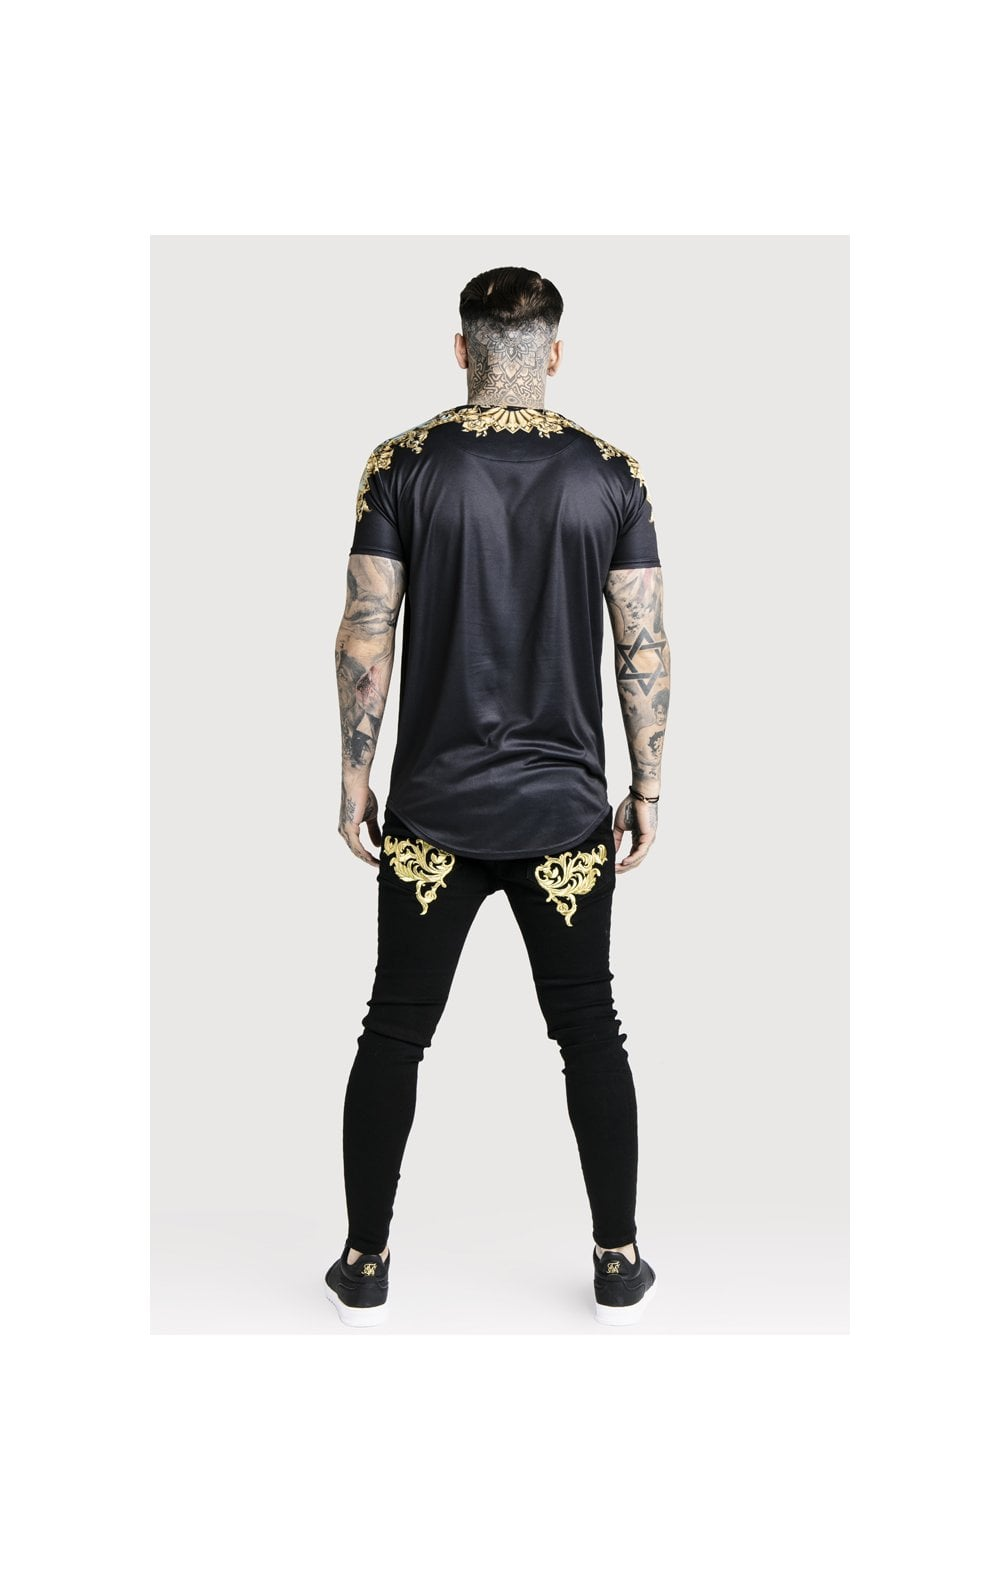 SikSilk x Dani Alves Lord Curved Hem Tee - Black (6)